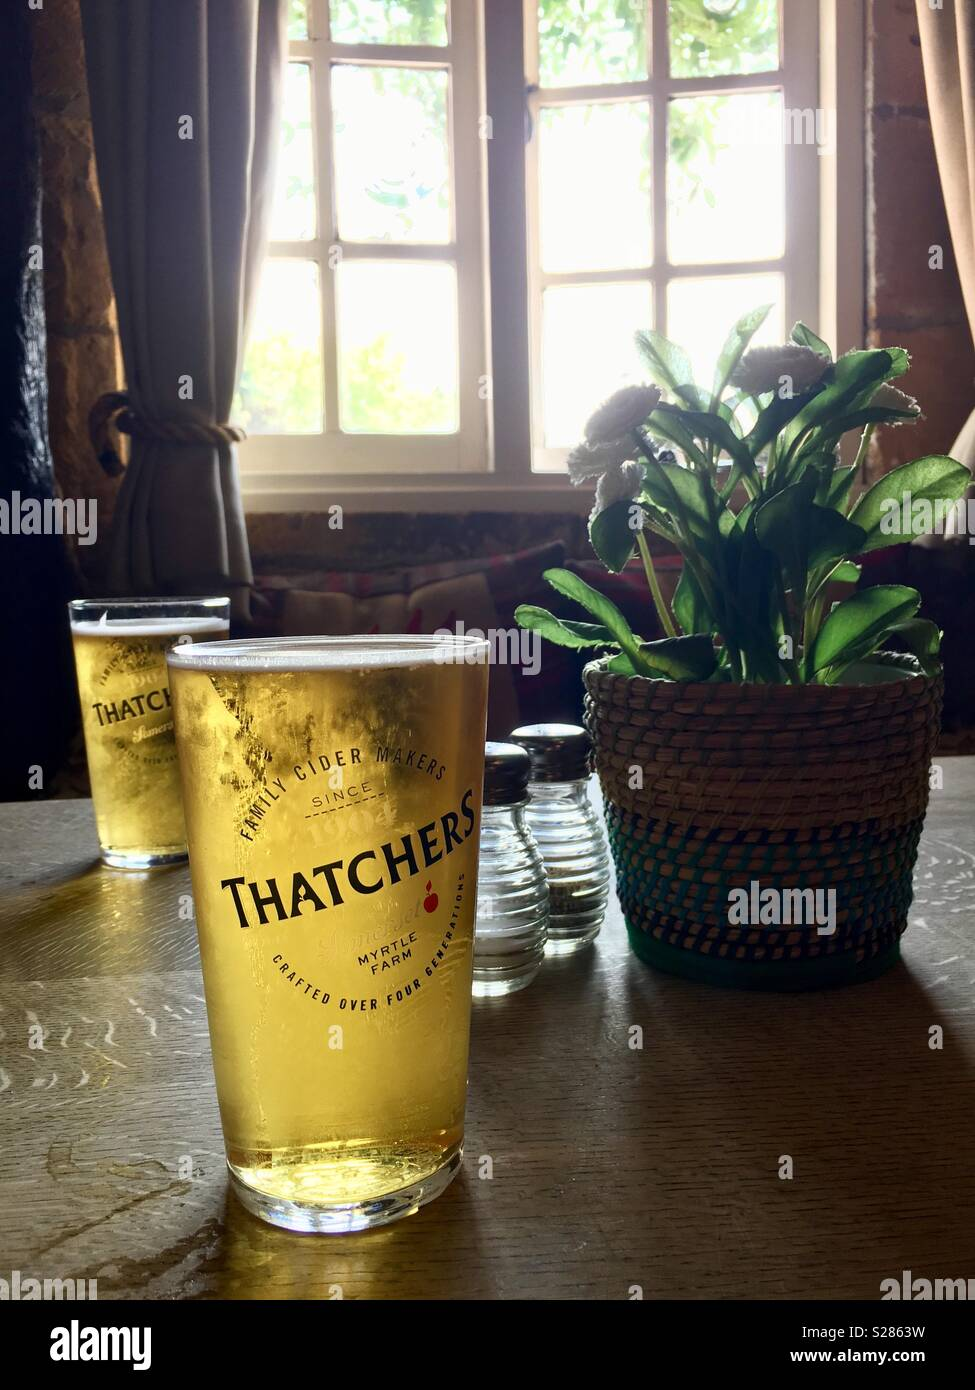 drinking-thatchers-apple-cider-at-a-pub-